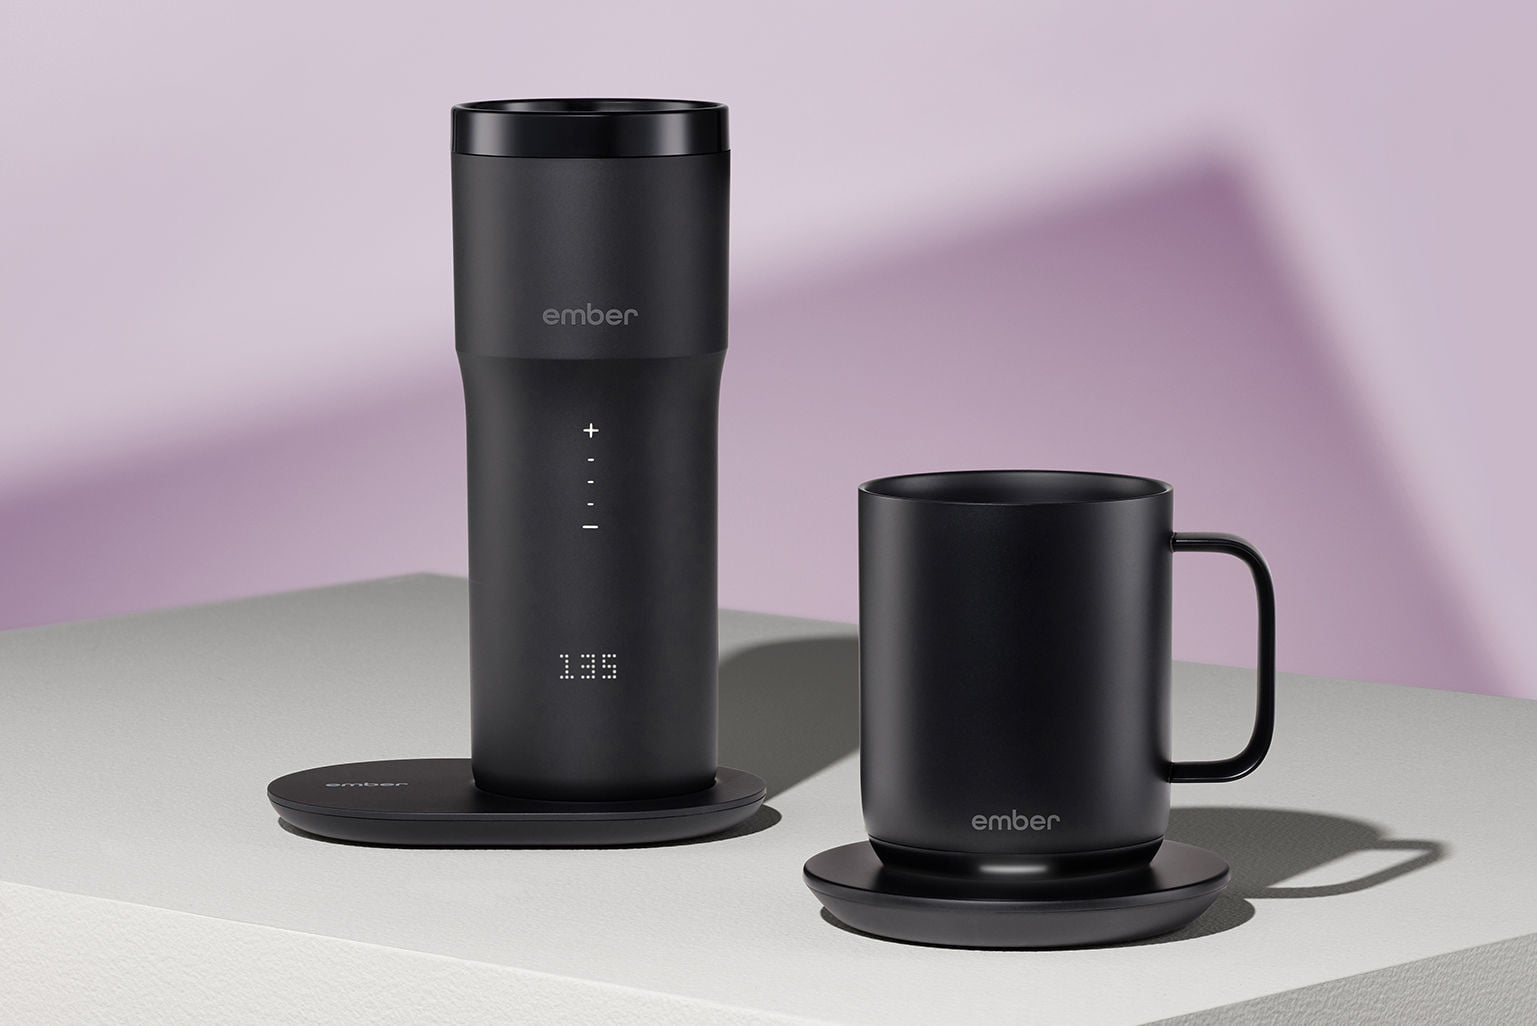 Ember's new smart mugs will keep your drinks warmer for longer this winter